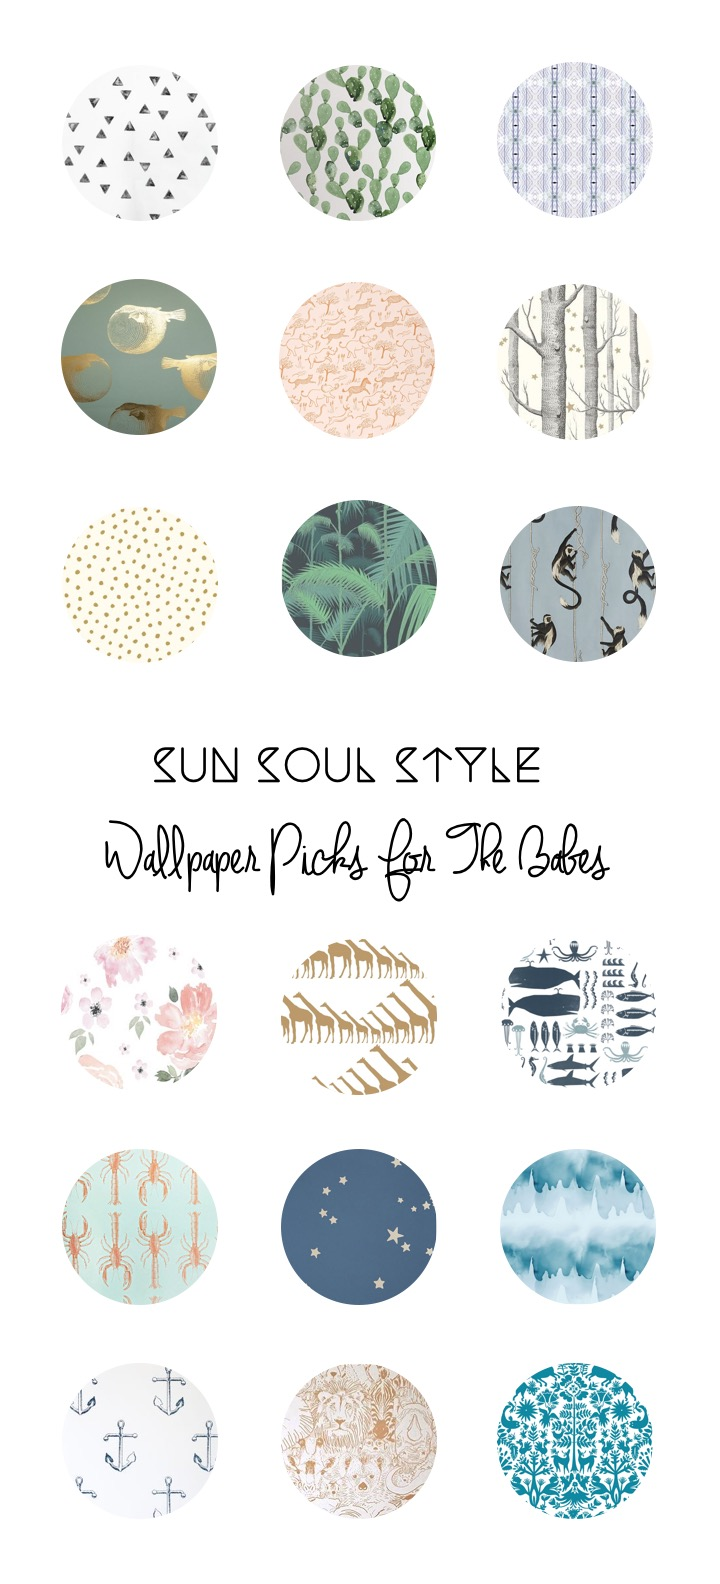 Wallpaper For The Babes via Sun Soul Style